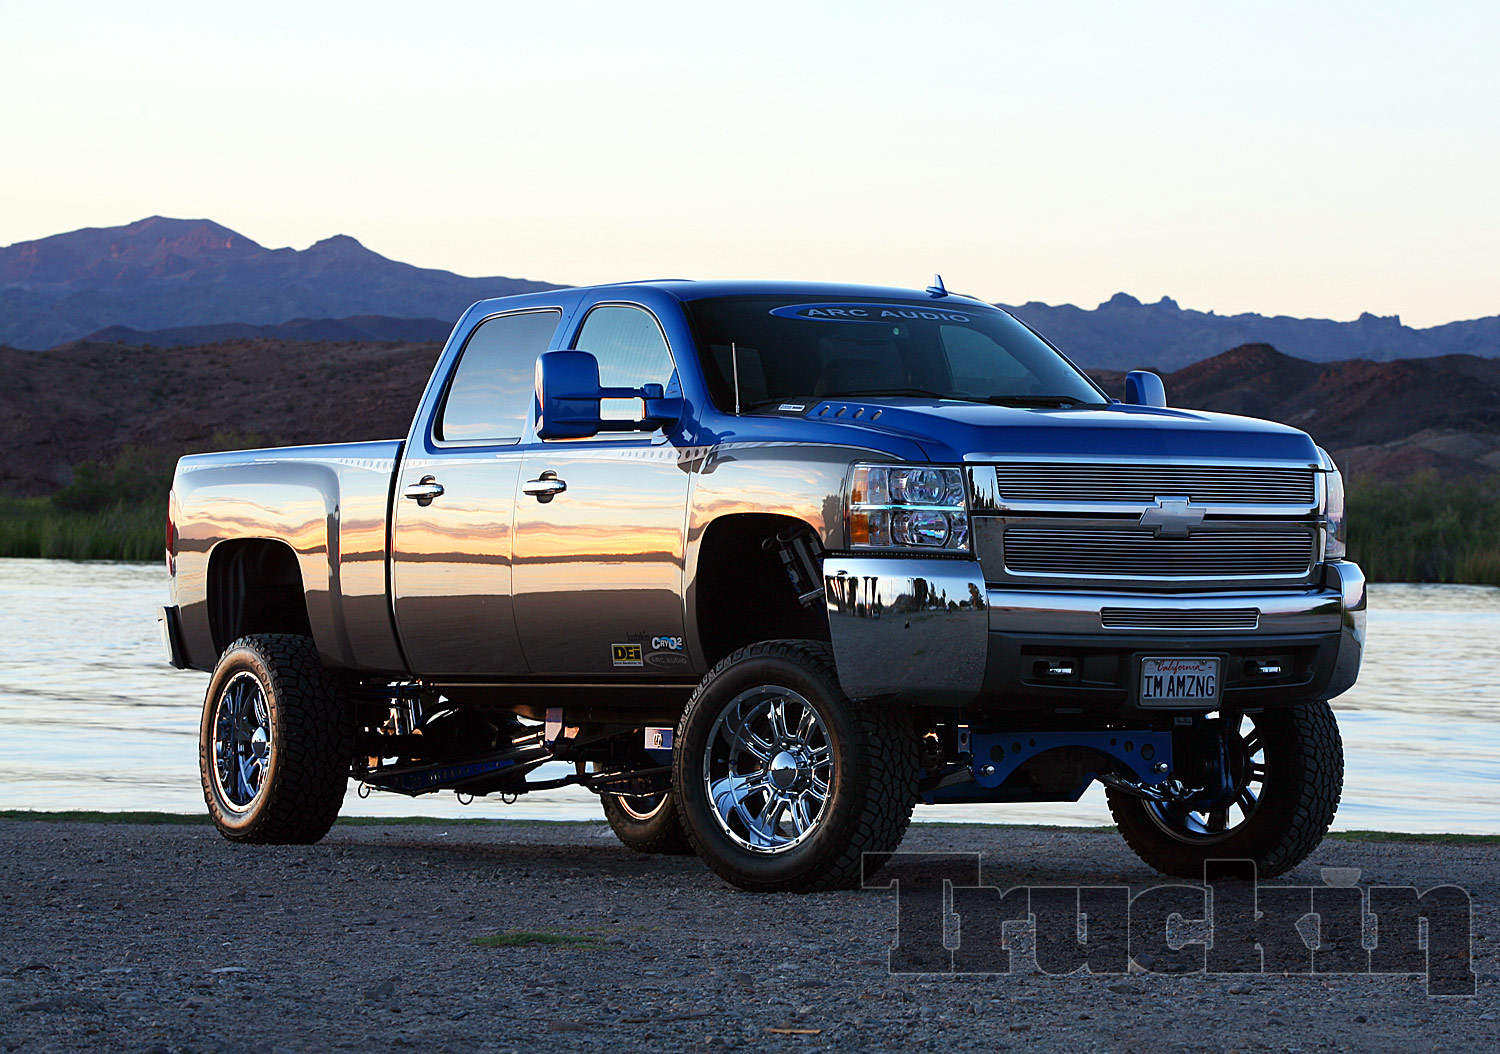 Chevy diesel truck wallpaper Lifted Chevy Diesel Trucks 1500x1054